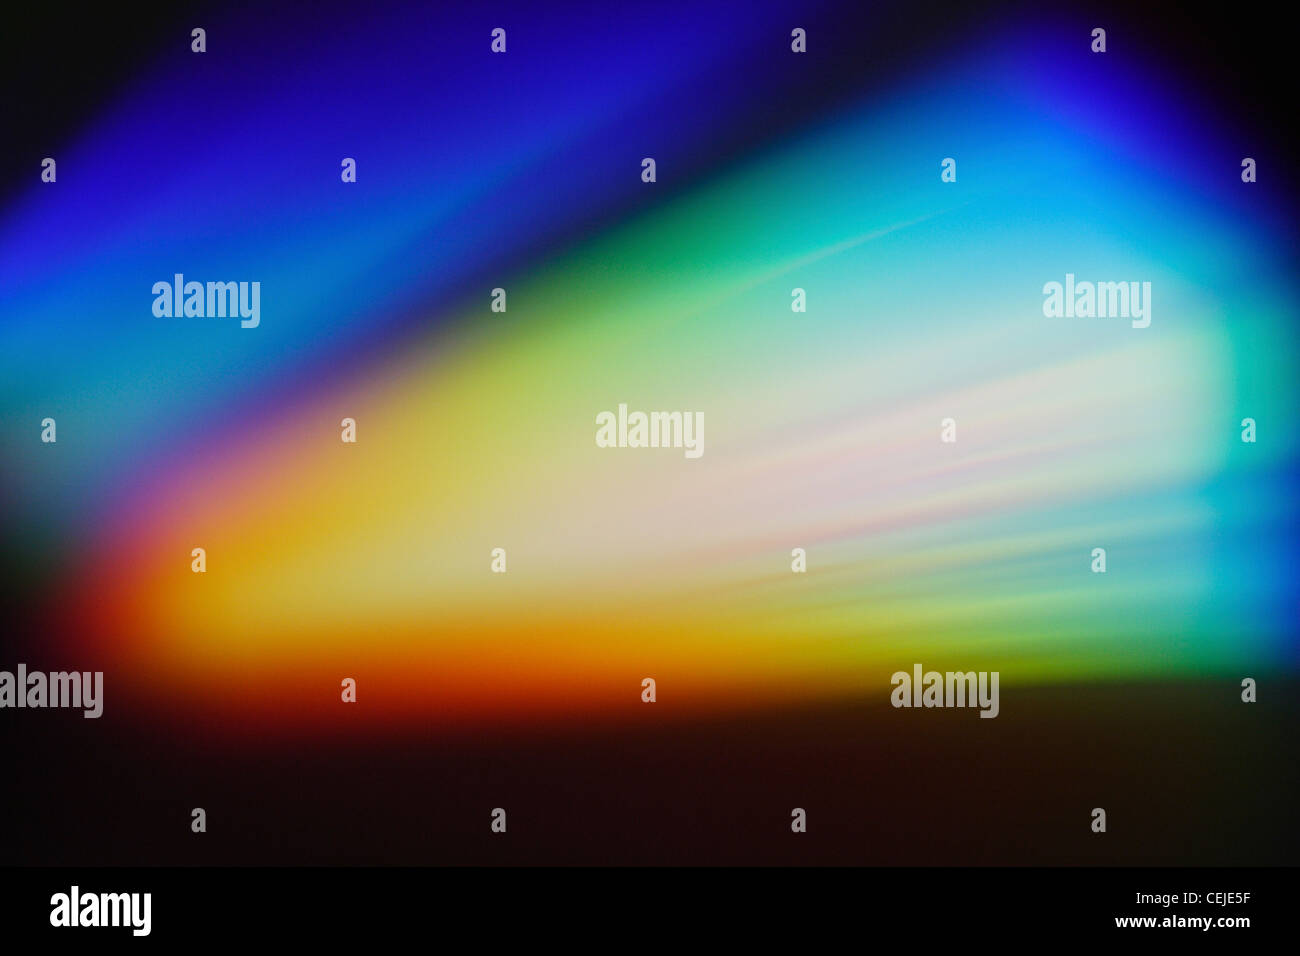 Abstract colours and light patterns on a CD - Stock Image